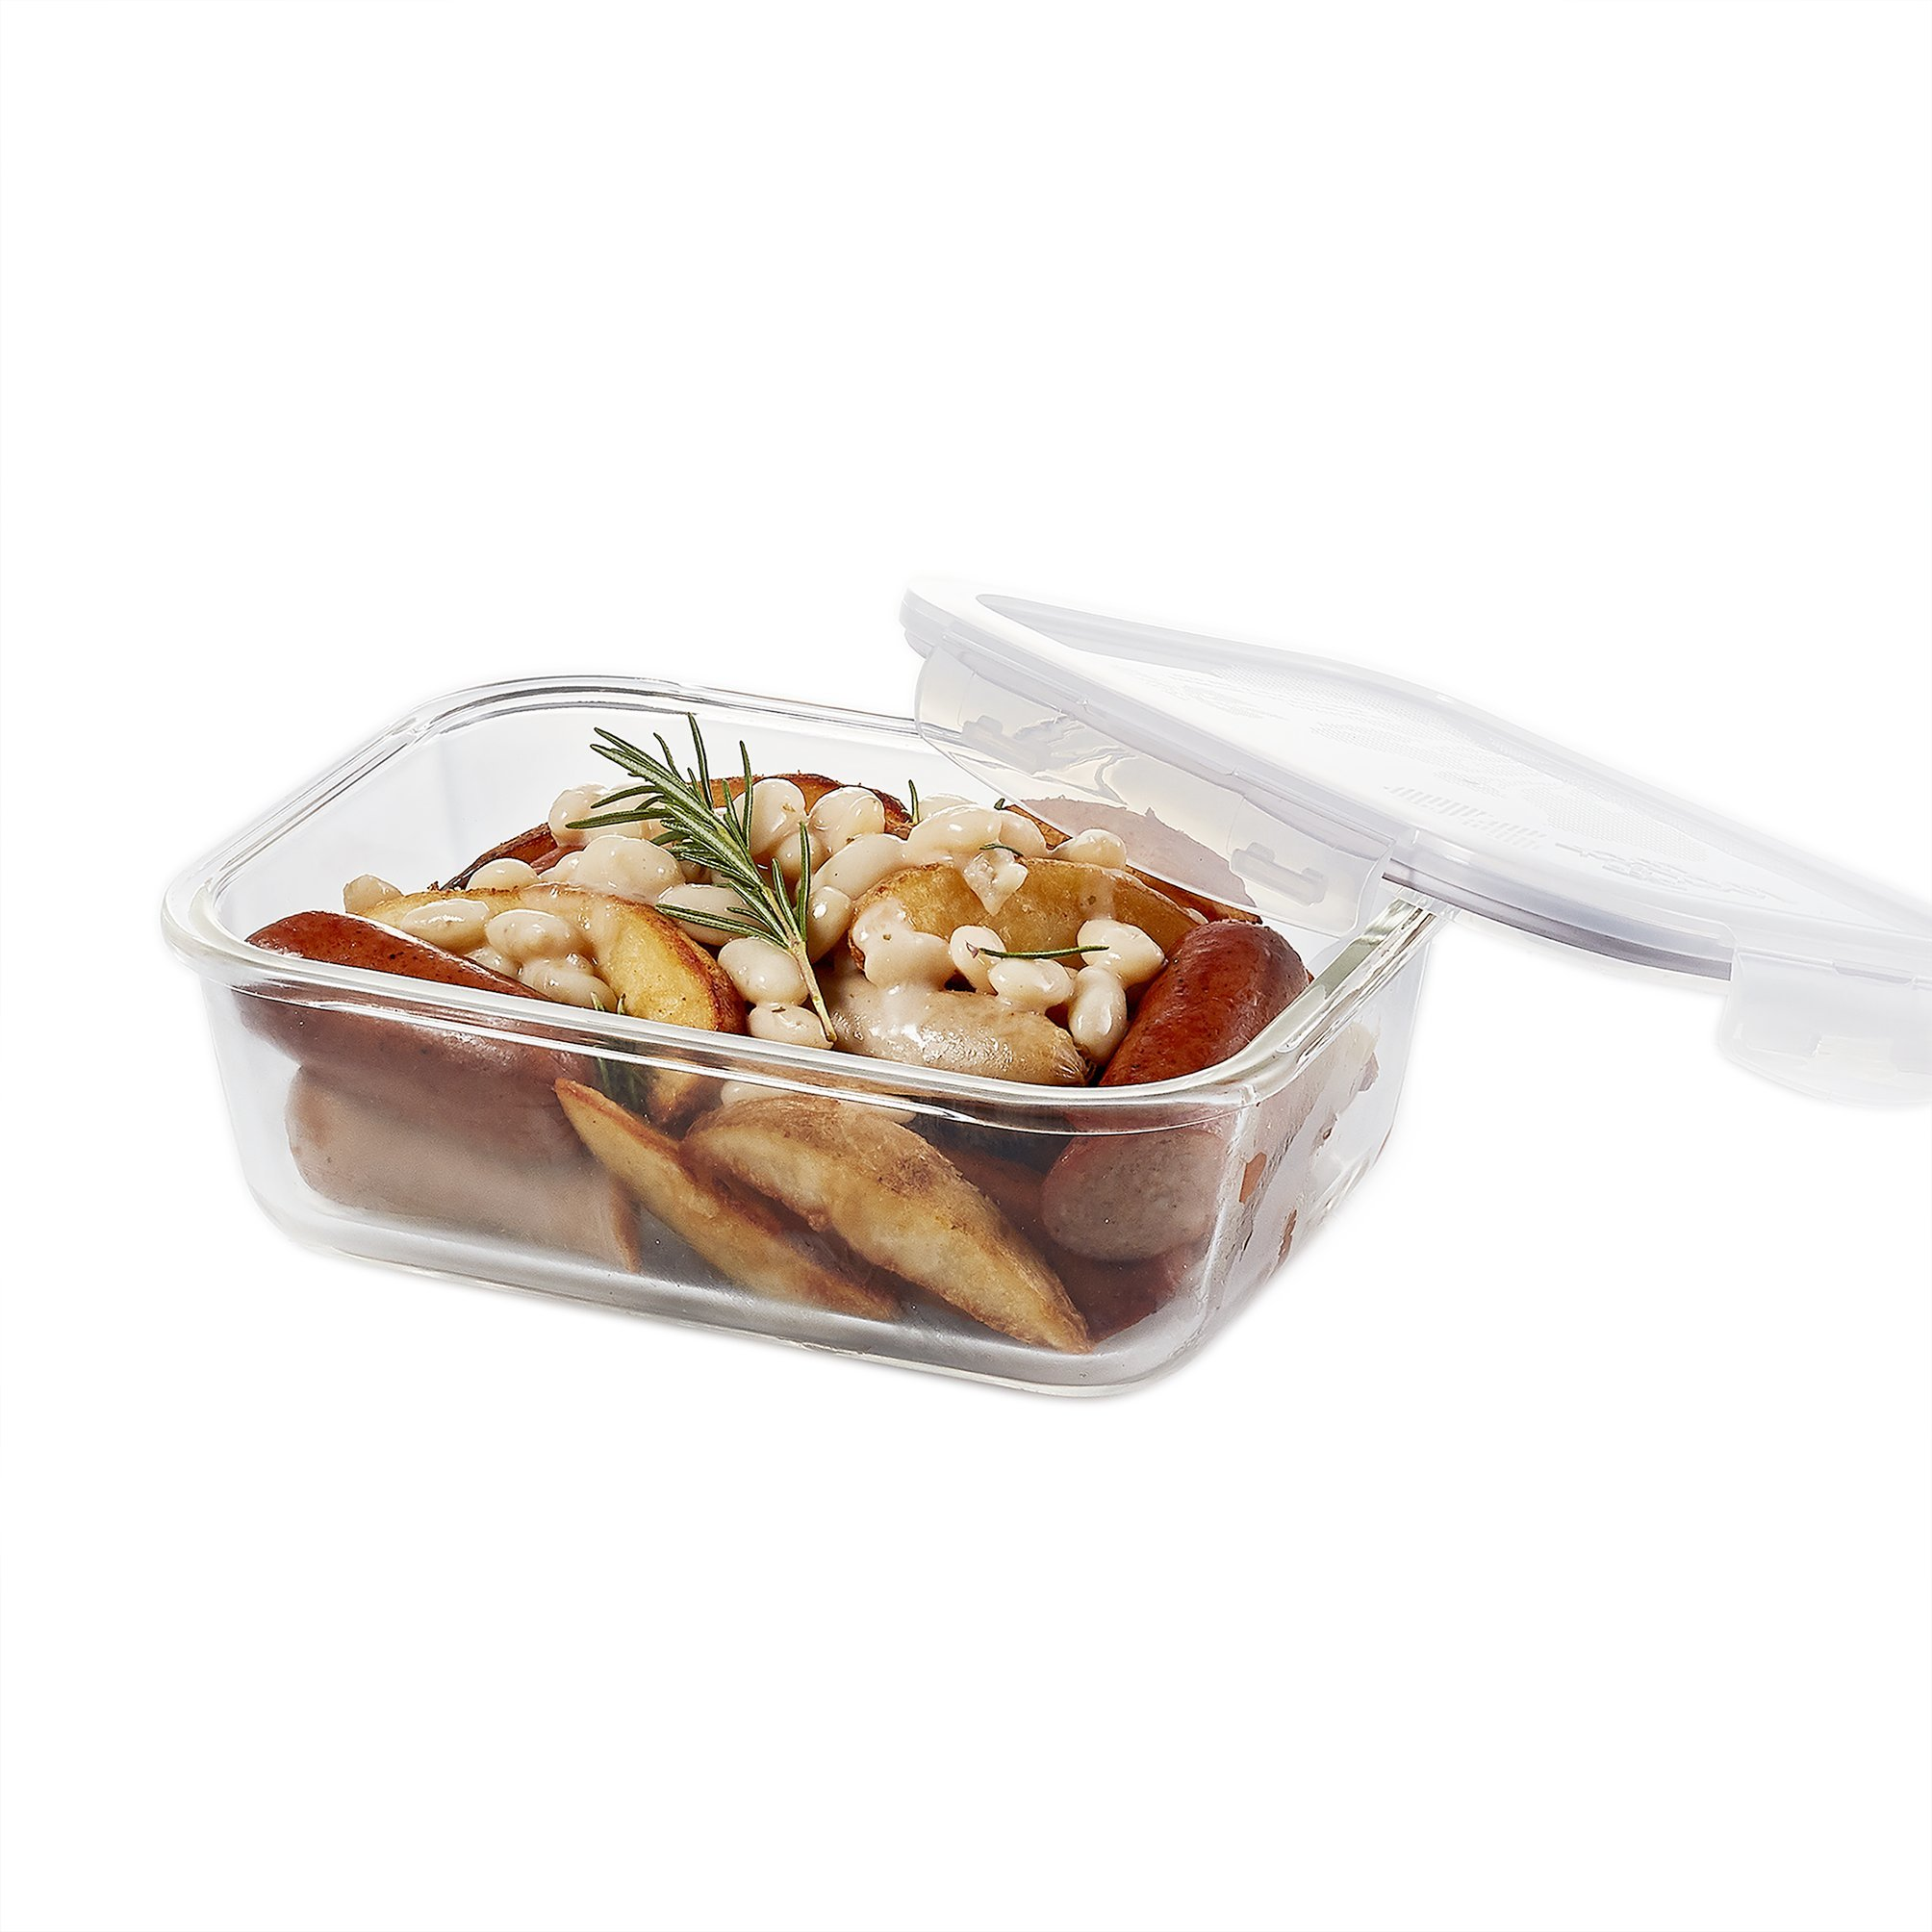 LOCK & LOCK LLG445 Purely Better Glass Food Storage Container / Rectangle Food Storage Bin - 34 Ounce, Clear